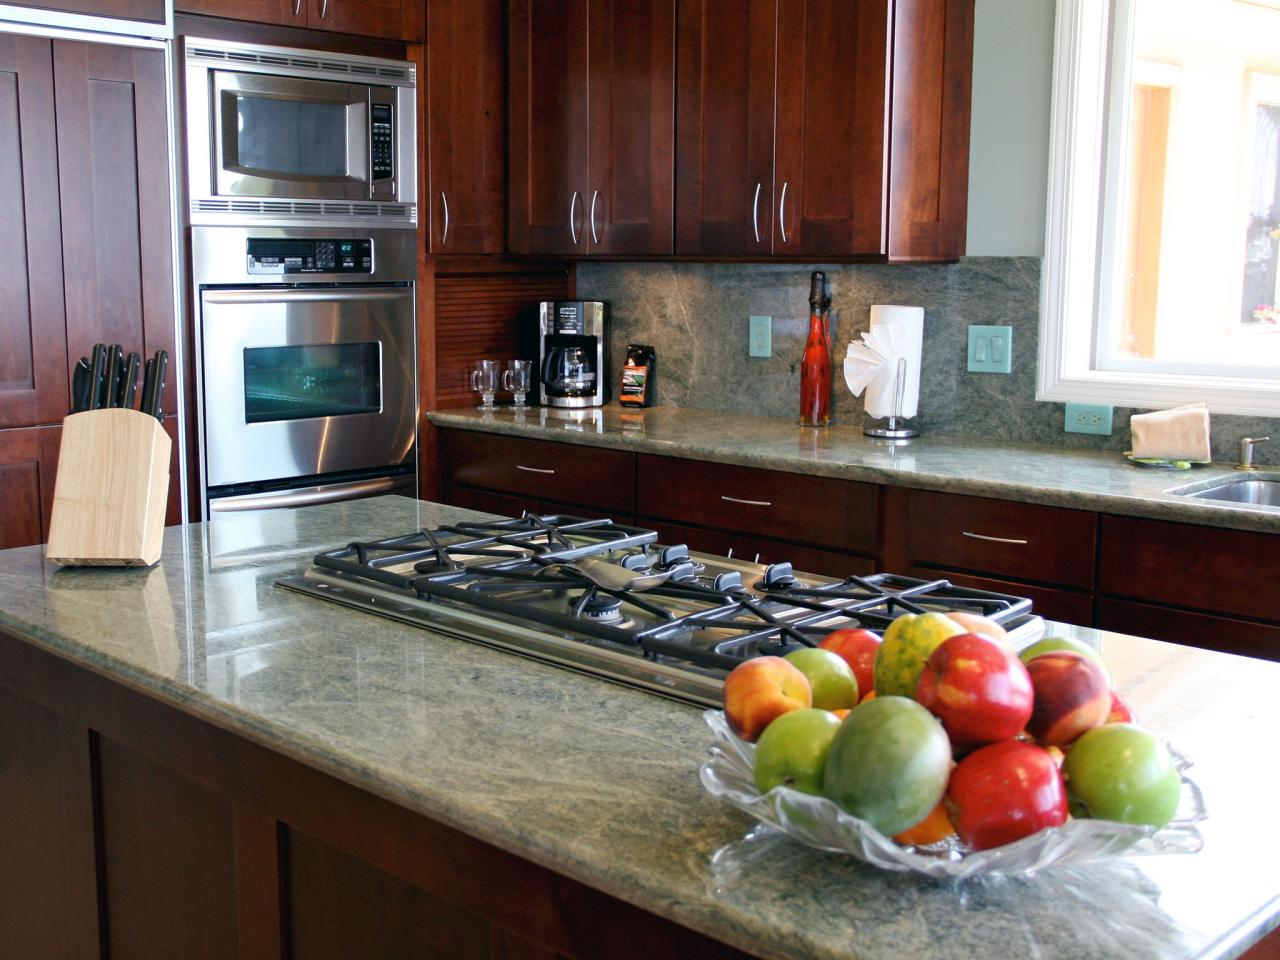 Kitchen Counter Ideas cheap kitchen countertops: pictures, options & ideas | hgtv